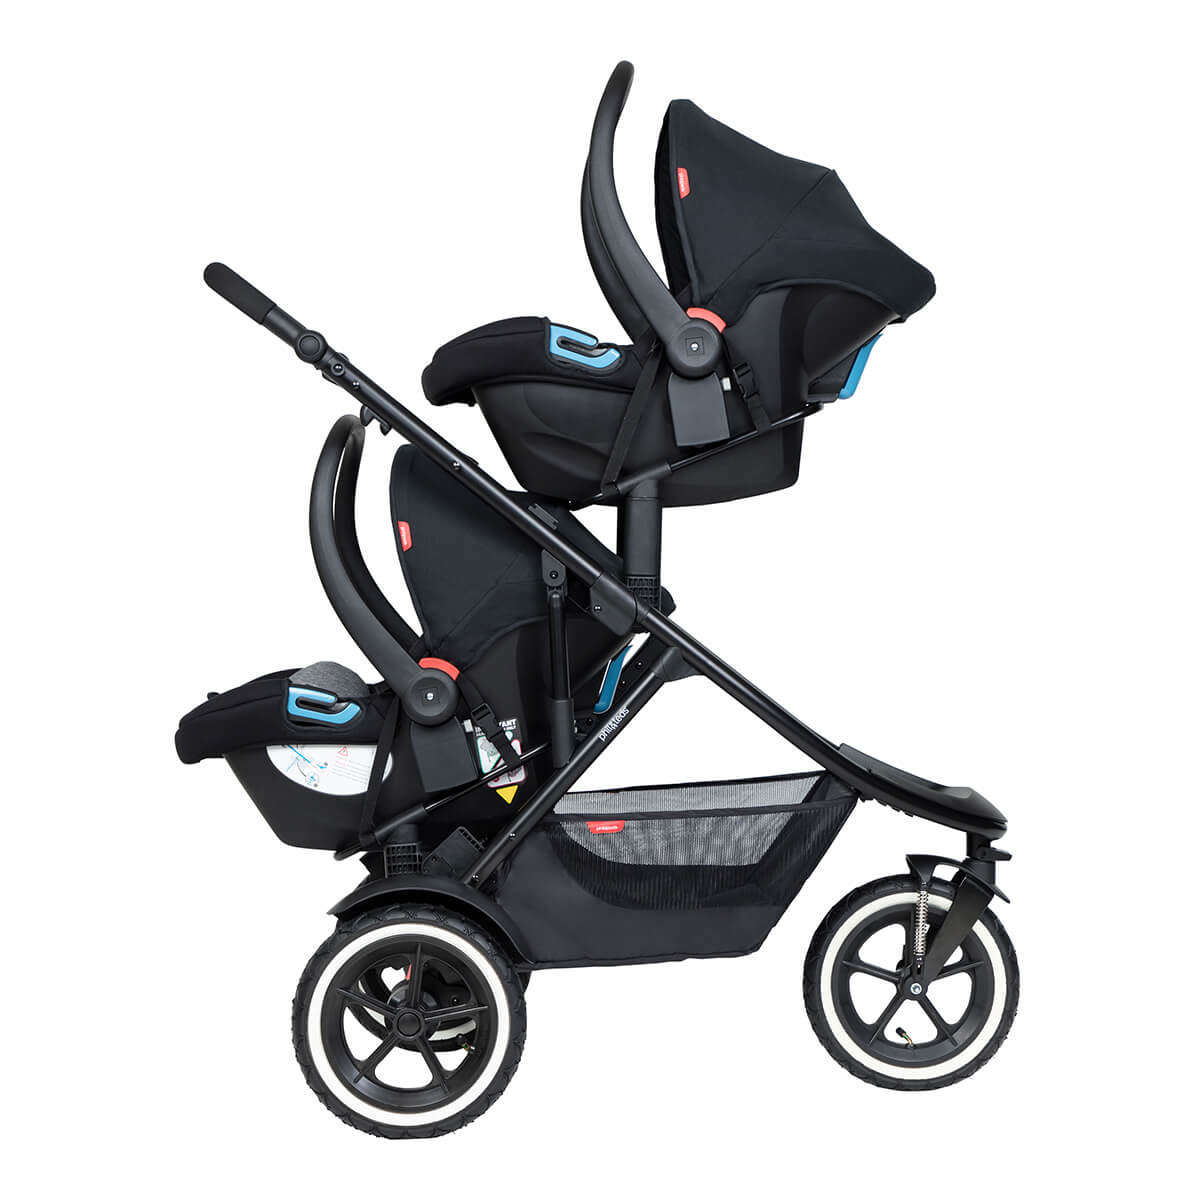 https://cdn.accentuate.io/4509867278433/19793940447402/philteds-sport-buggy-with-double-alpha-travel-system-v1626485276741.jpg?1200x1200